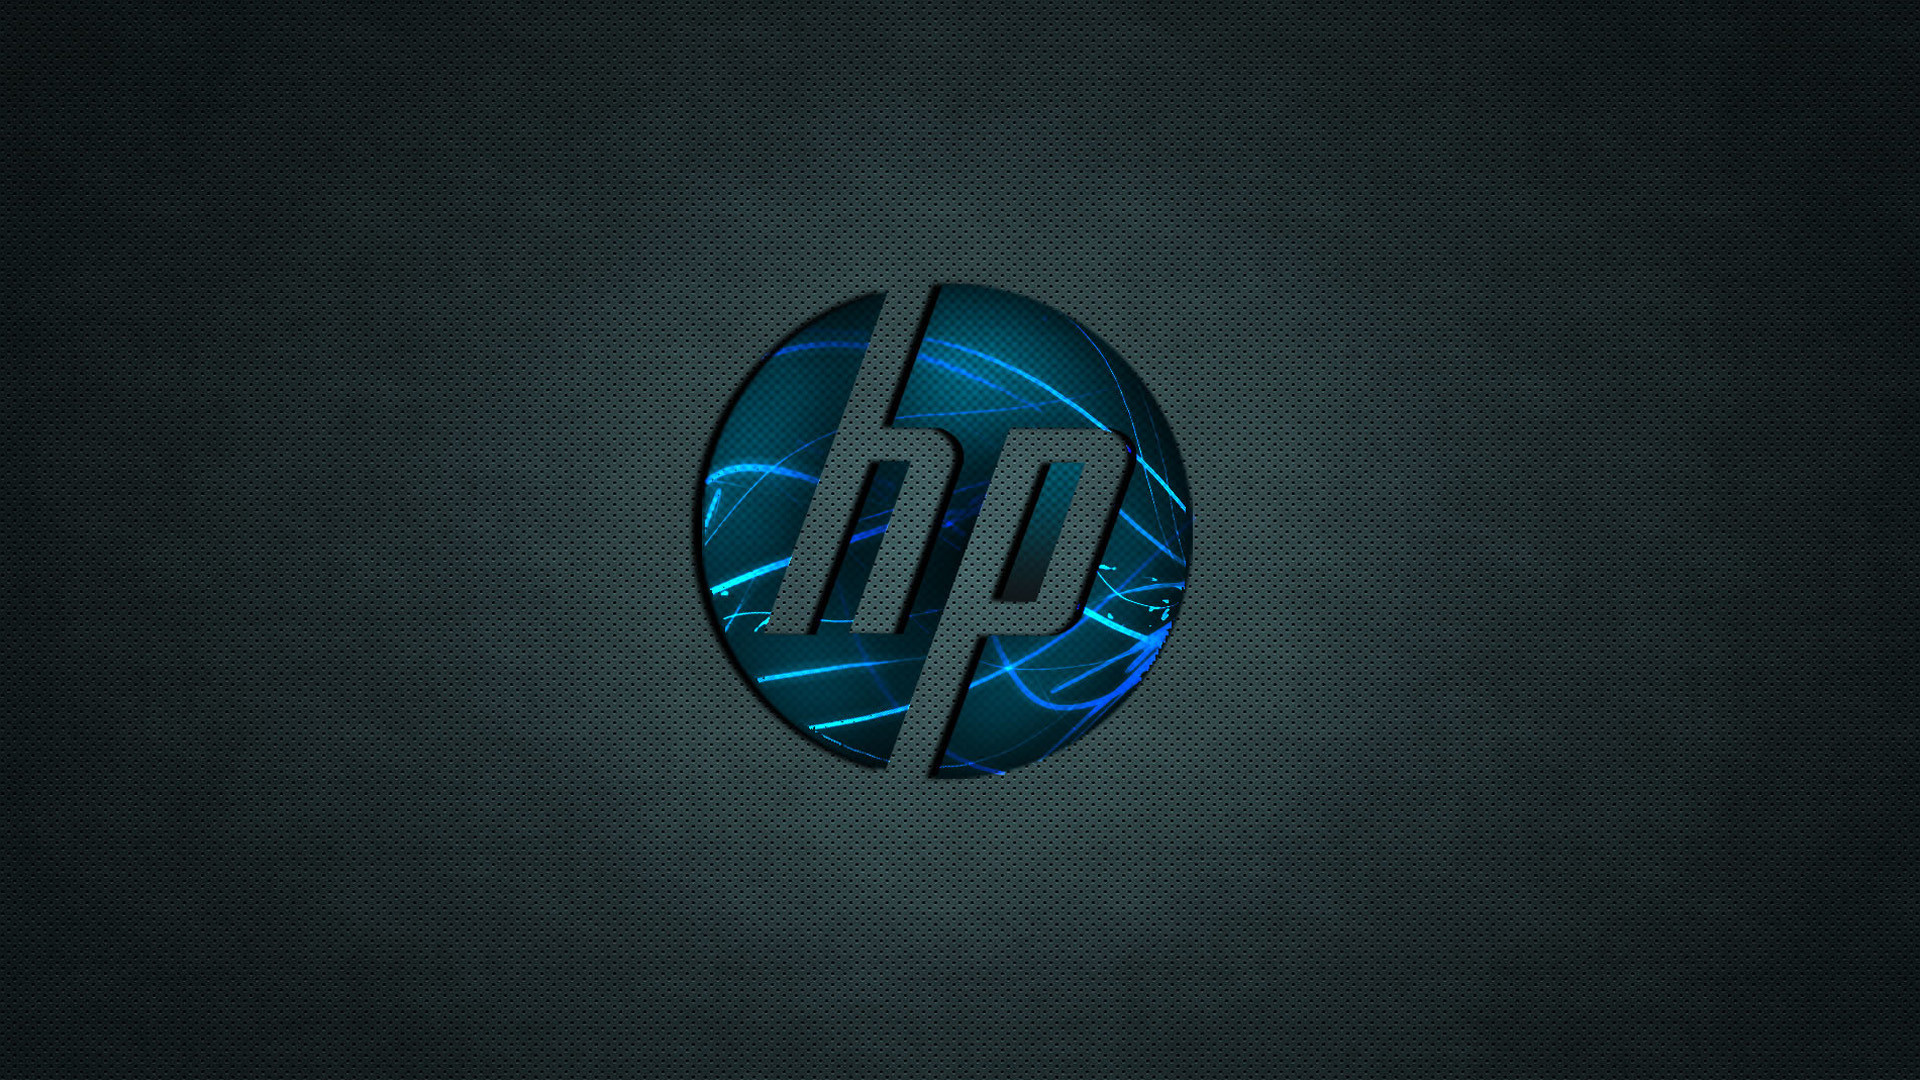 hp wallpapers hd 1080p (69+ images)